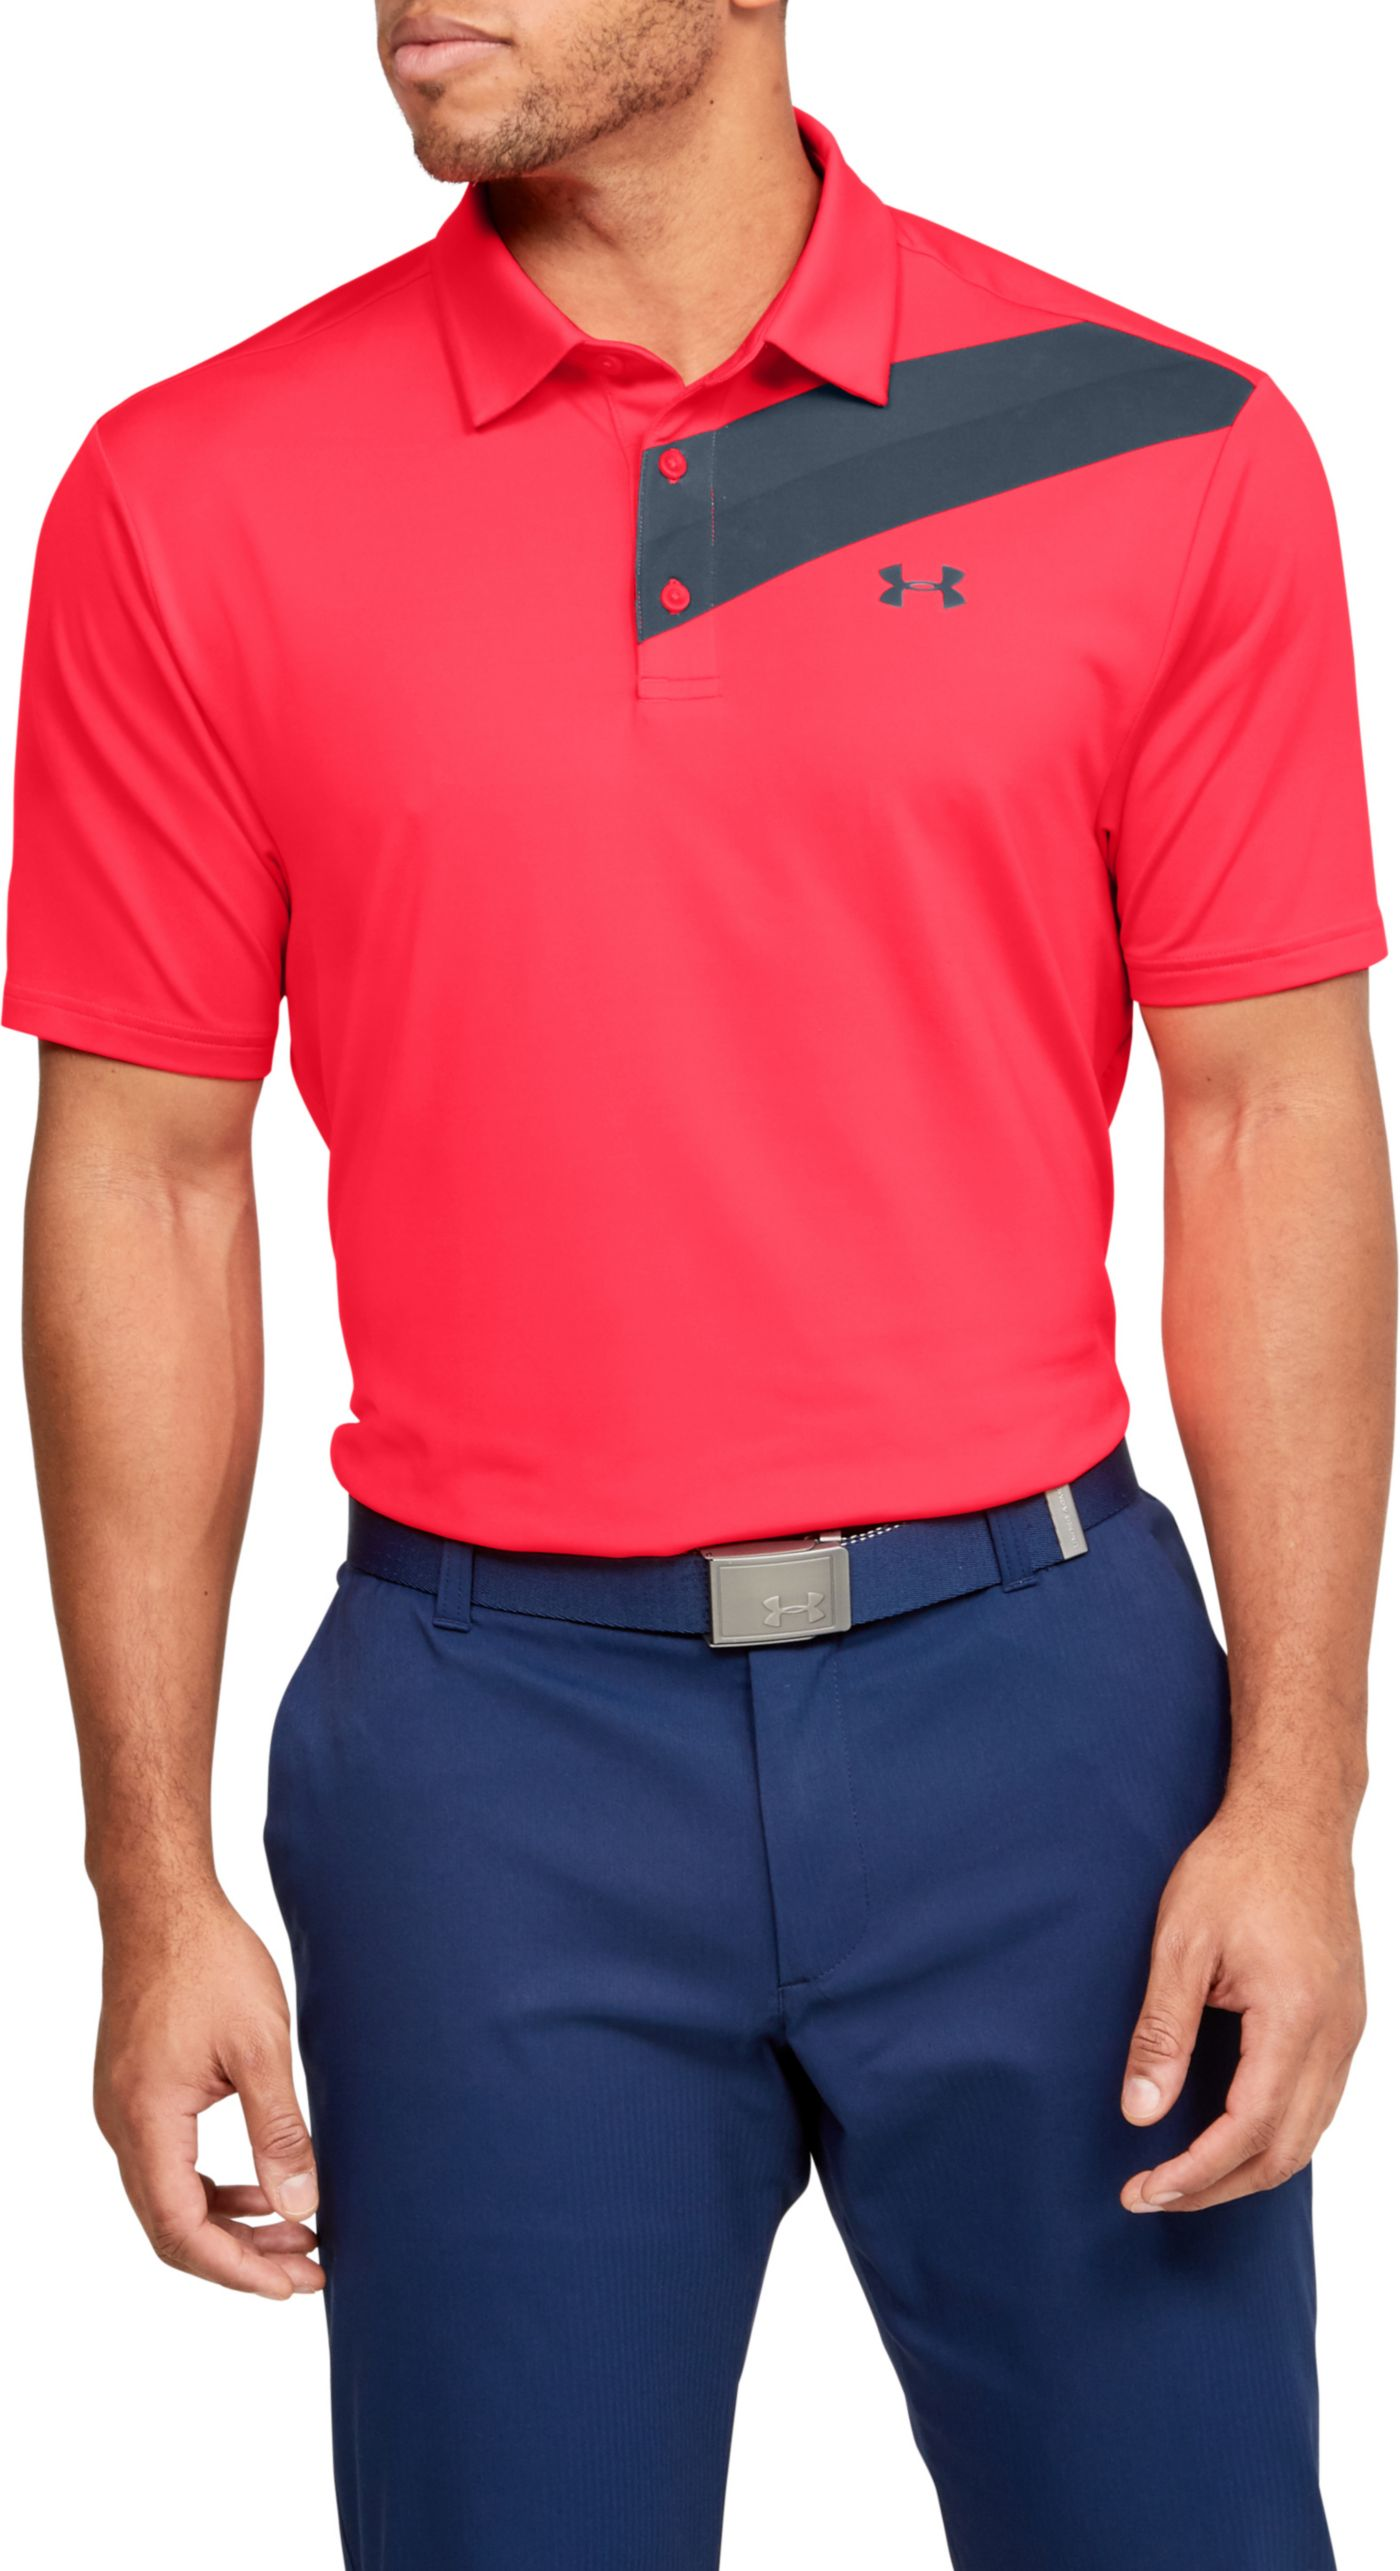 Under Armour Men's Playoff 2.0 Chest Print Golf Polo